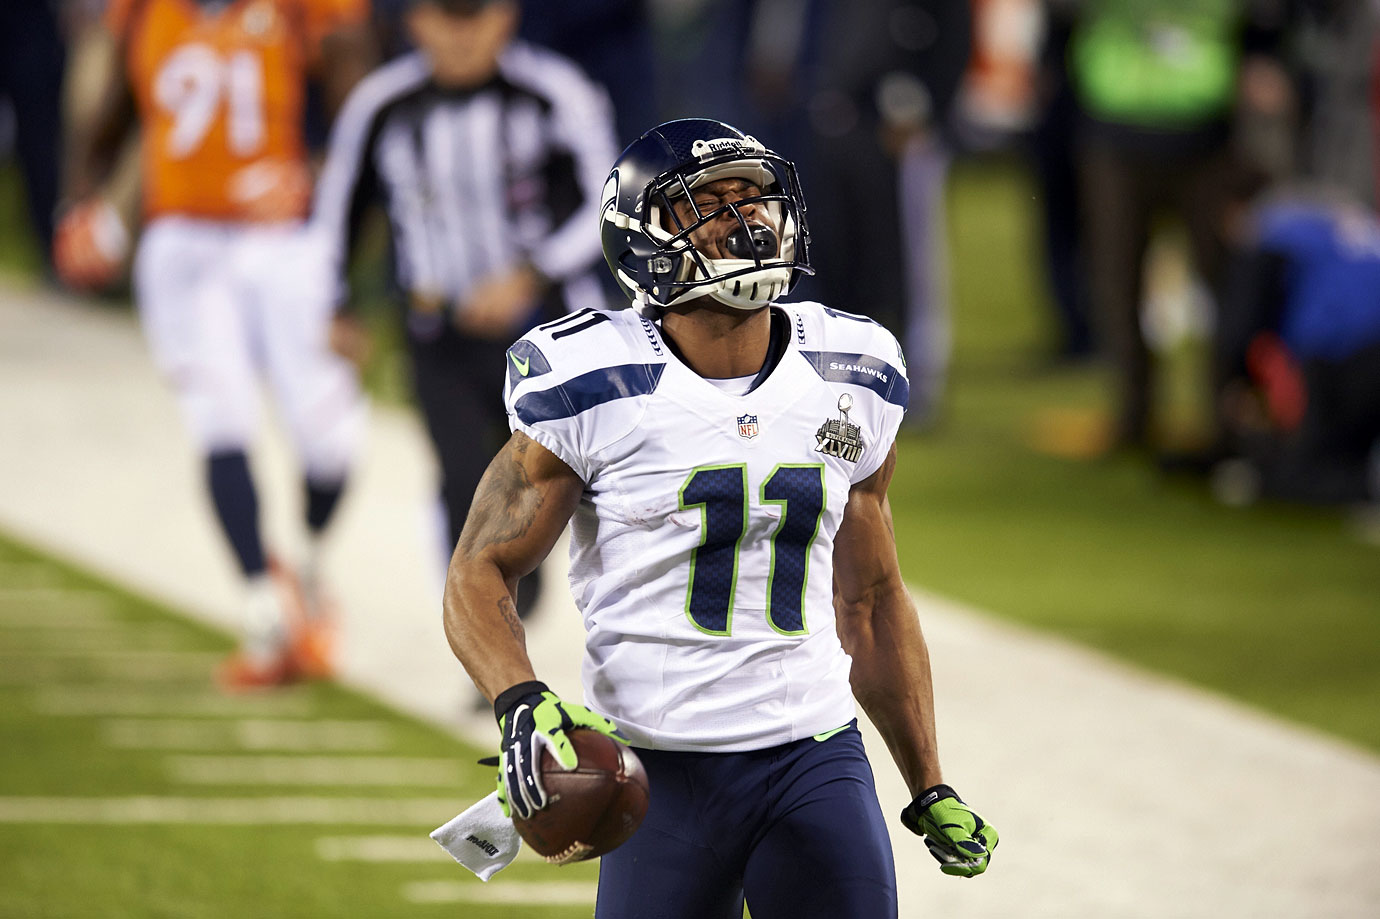 Percy Harvin to the Seattle Seahawks from the Minnesota Vikings for first- and seventh-round picks in 2013 and a third-round pick in 2014 looked like a horrible move by the Vikings at the time of the deal. In hindsight, not so bad. And though the Seahawks won a Super Bowl with Harvin on the field in February 2014, he wore out his welcome and was traded to the New York Jets the following season.